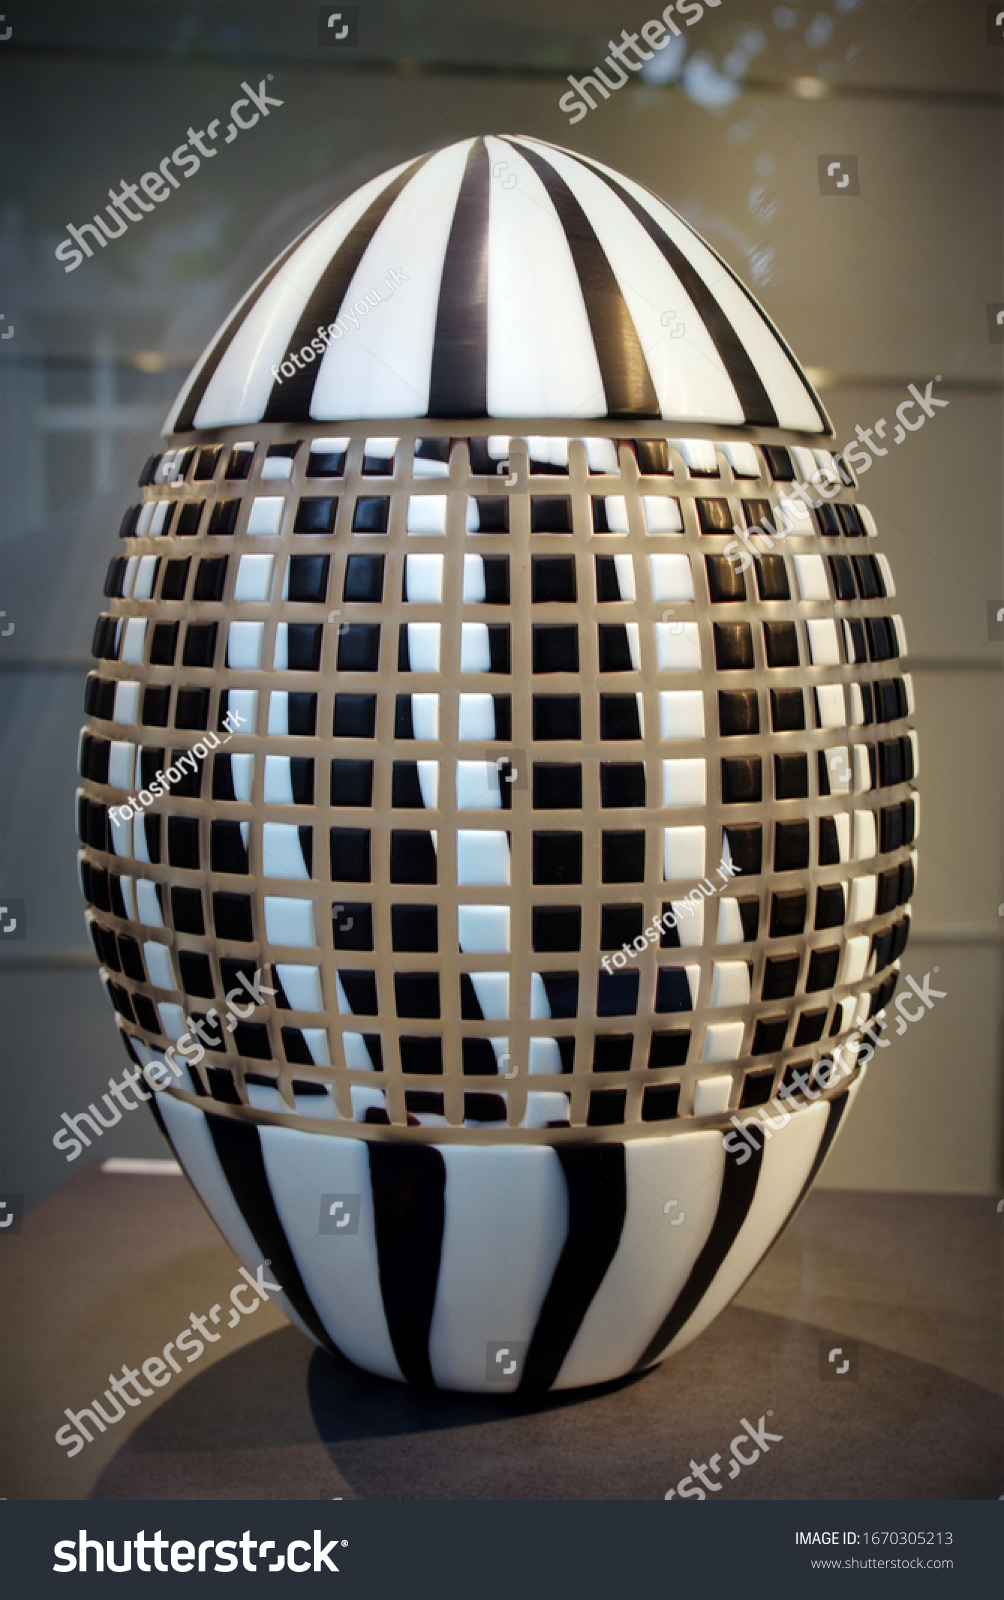 stock-photo-porcelain-easter-egg-with-square-fields-1670305213.jpg